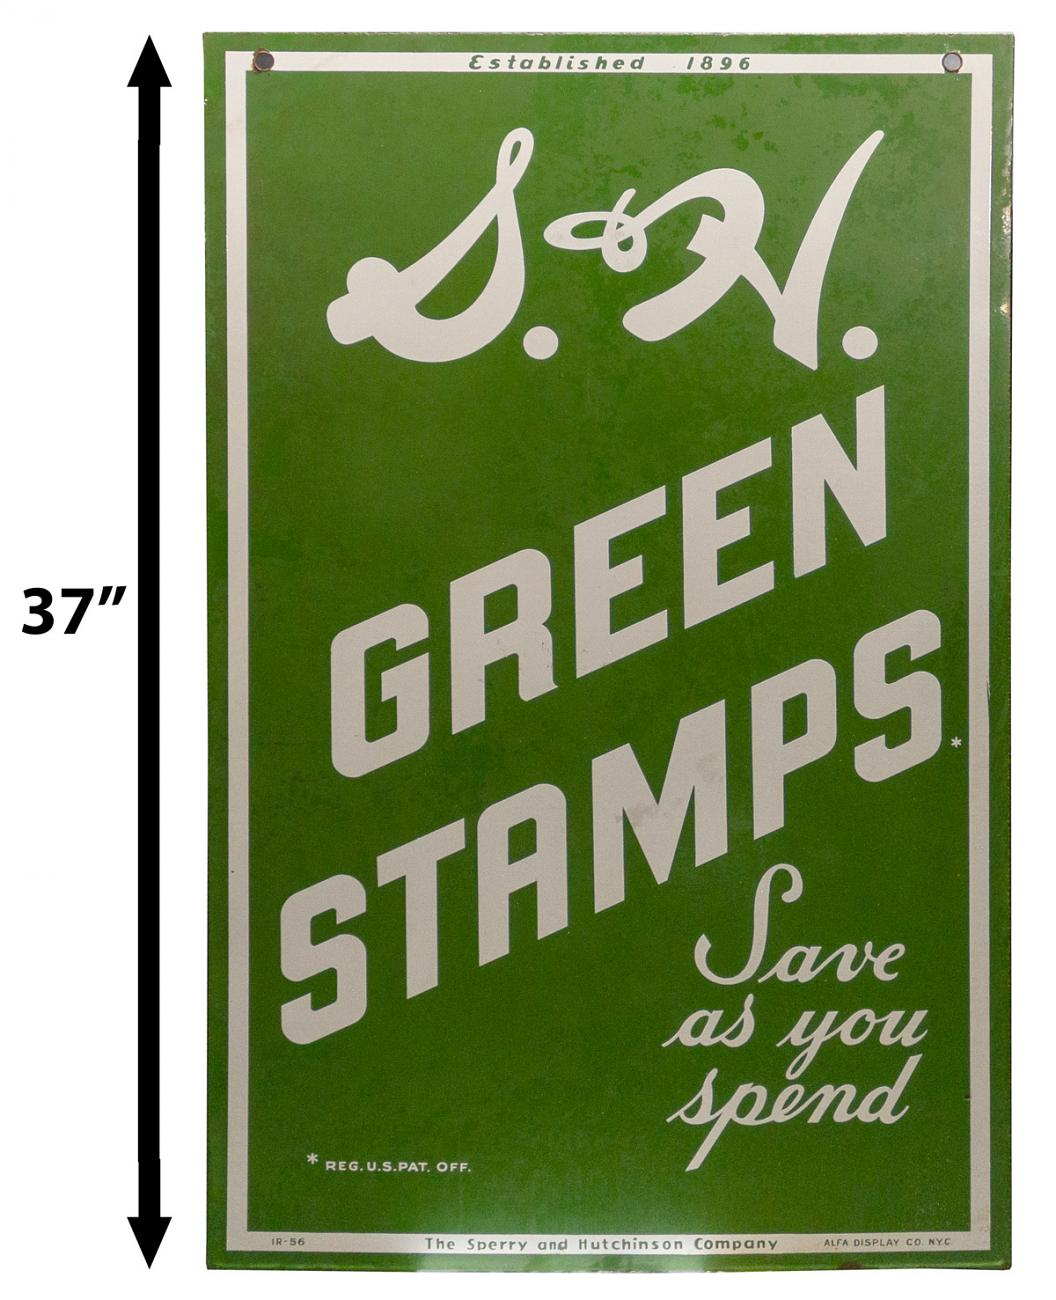 S & H Green Stamps Double Sided Porcelain Sign